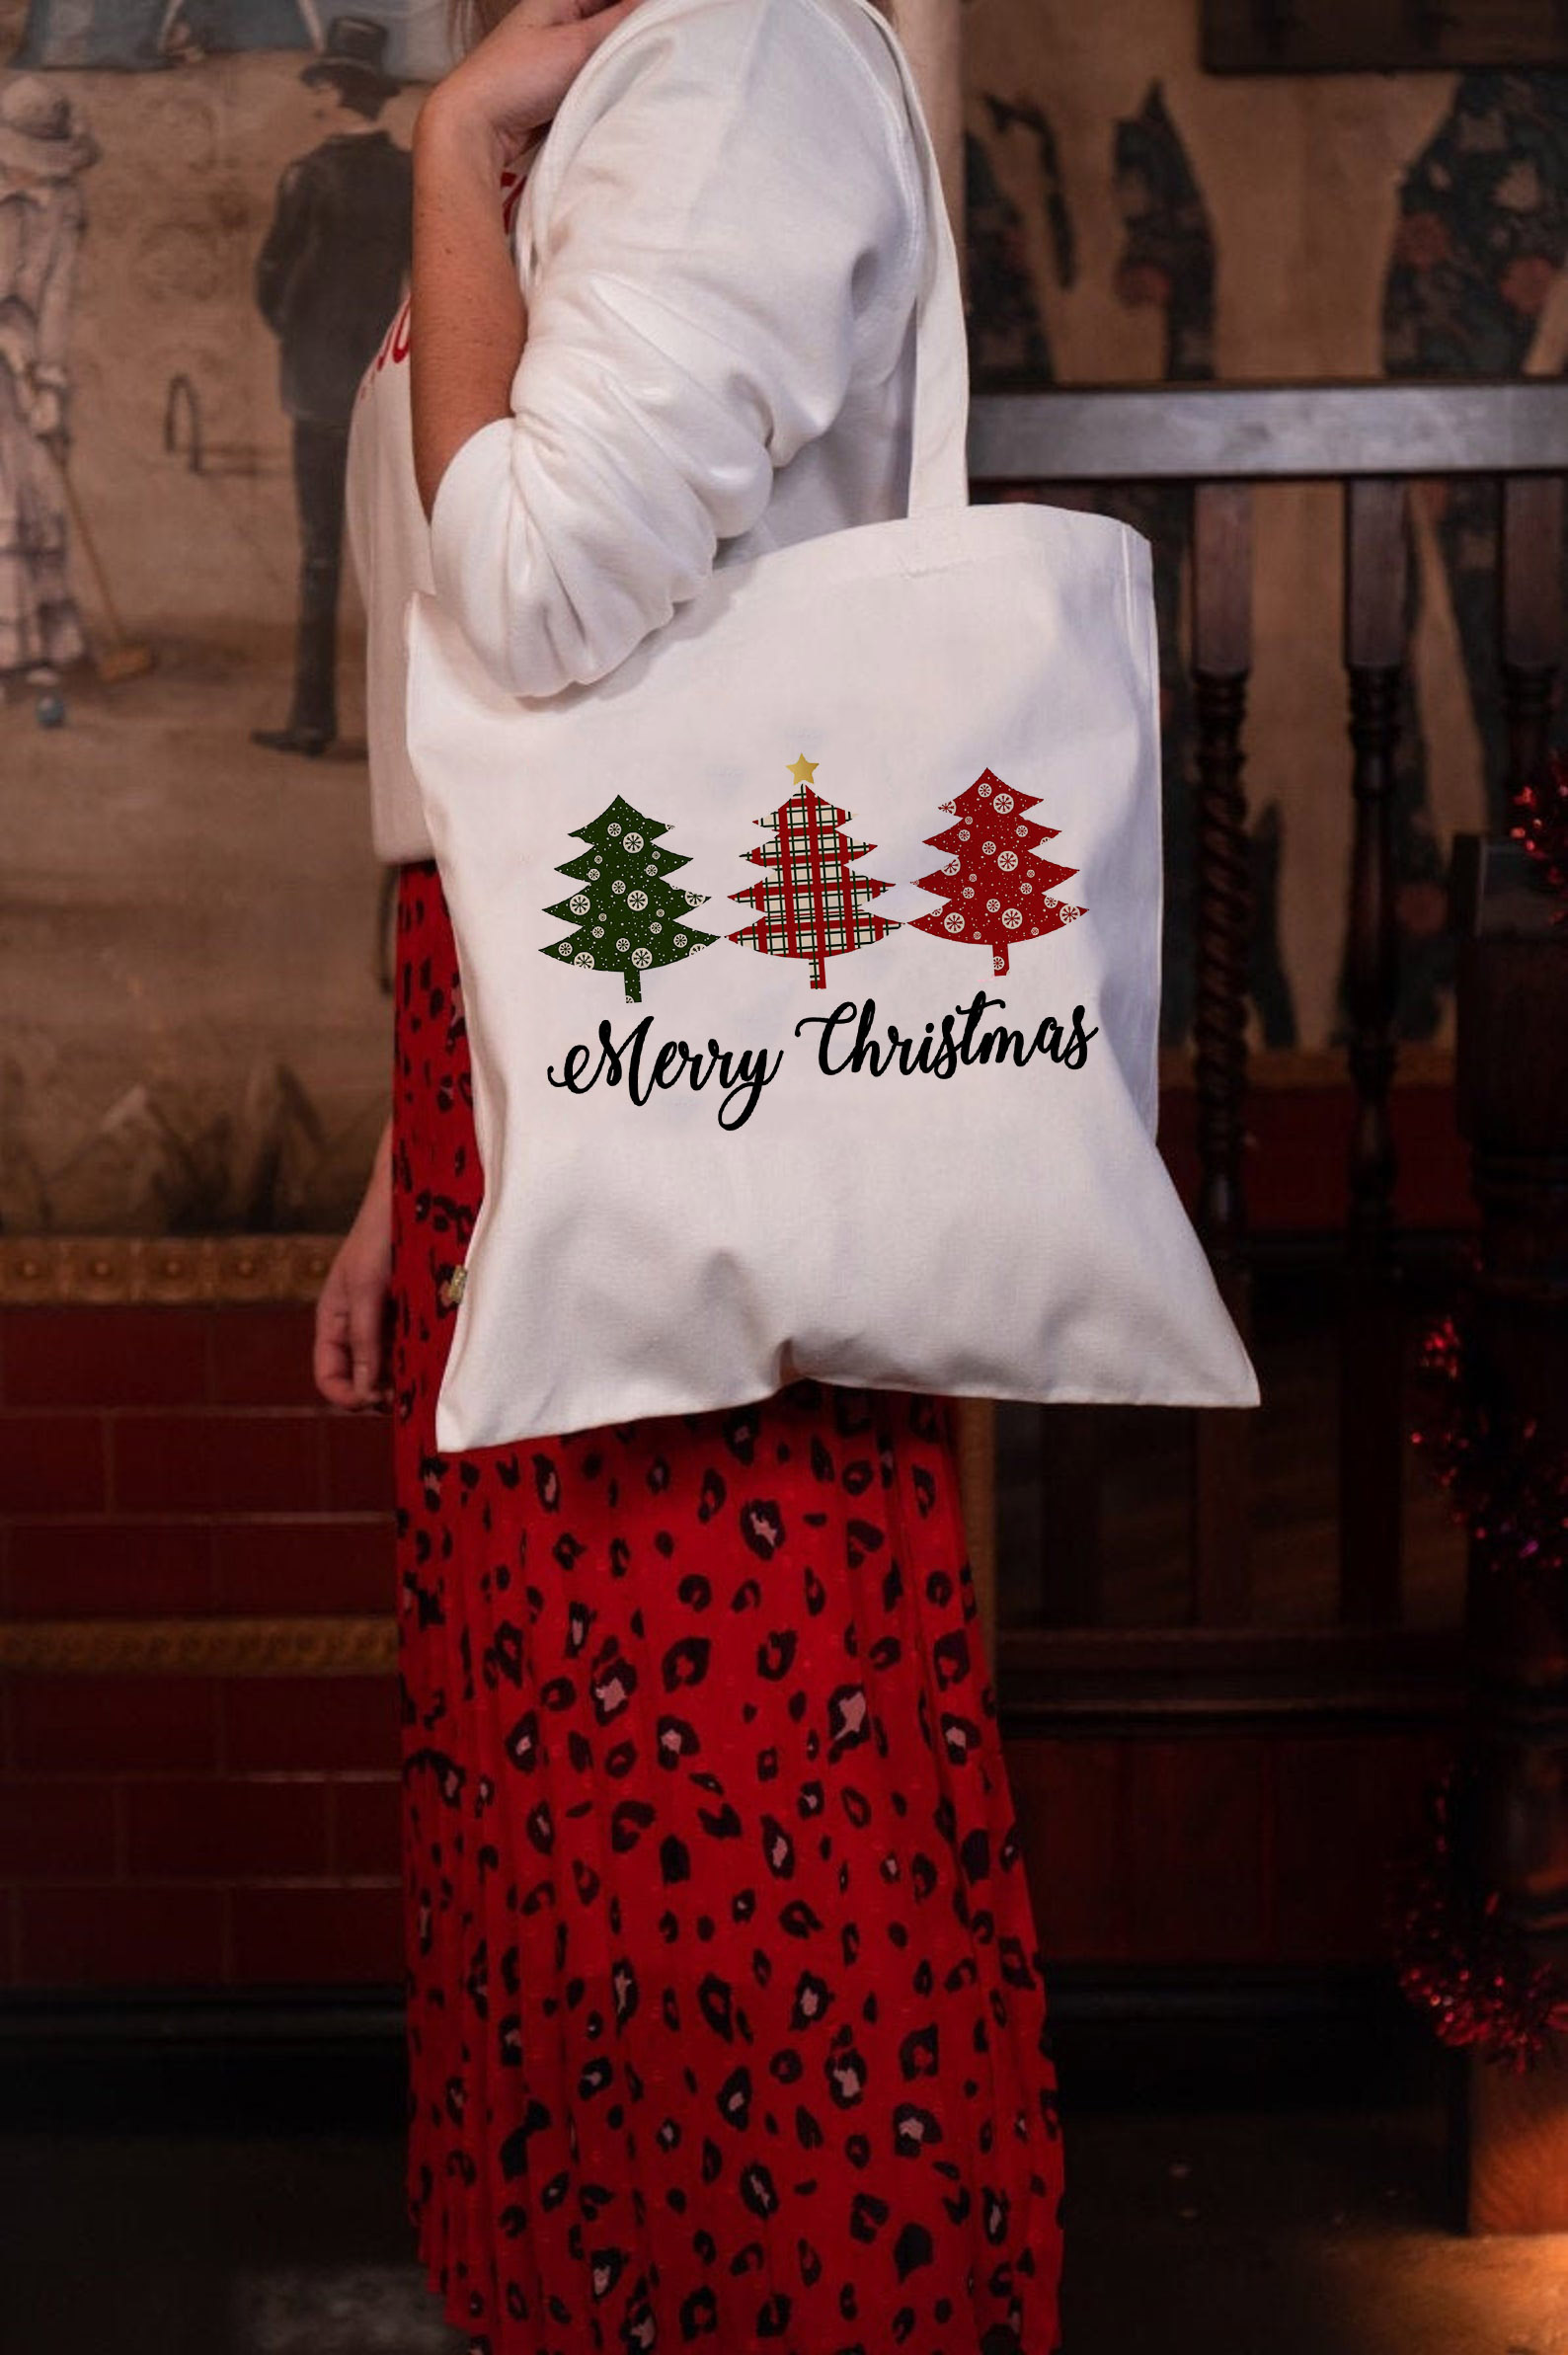 Merry Christmas Tote Bag Women Canvas Bags Casual Cloth Shoulder Bag For Girls Ladies Christmas Shopper Bag Holiday Gift